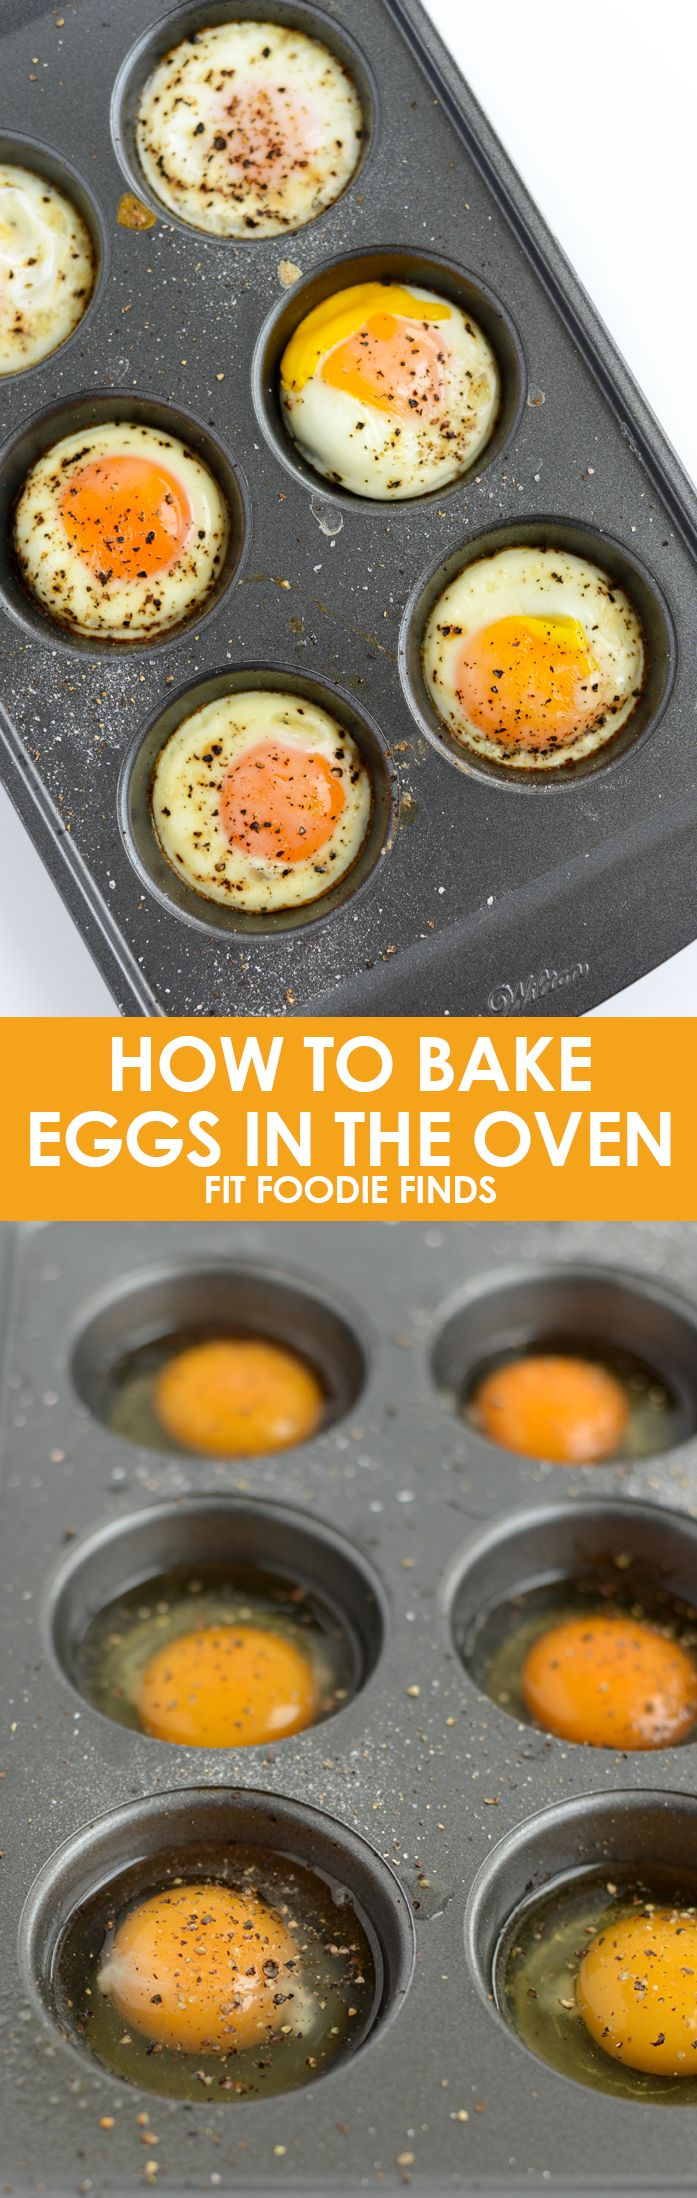 3 New Ways To Cook Eggs (with Recipes!) - FitFluential